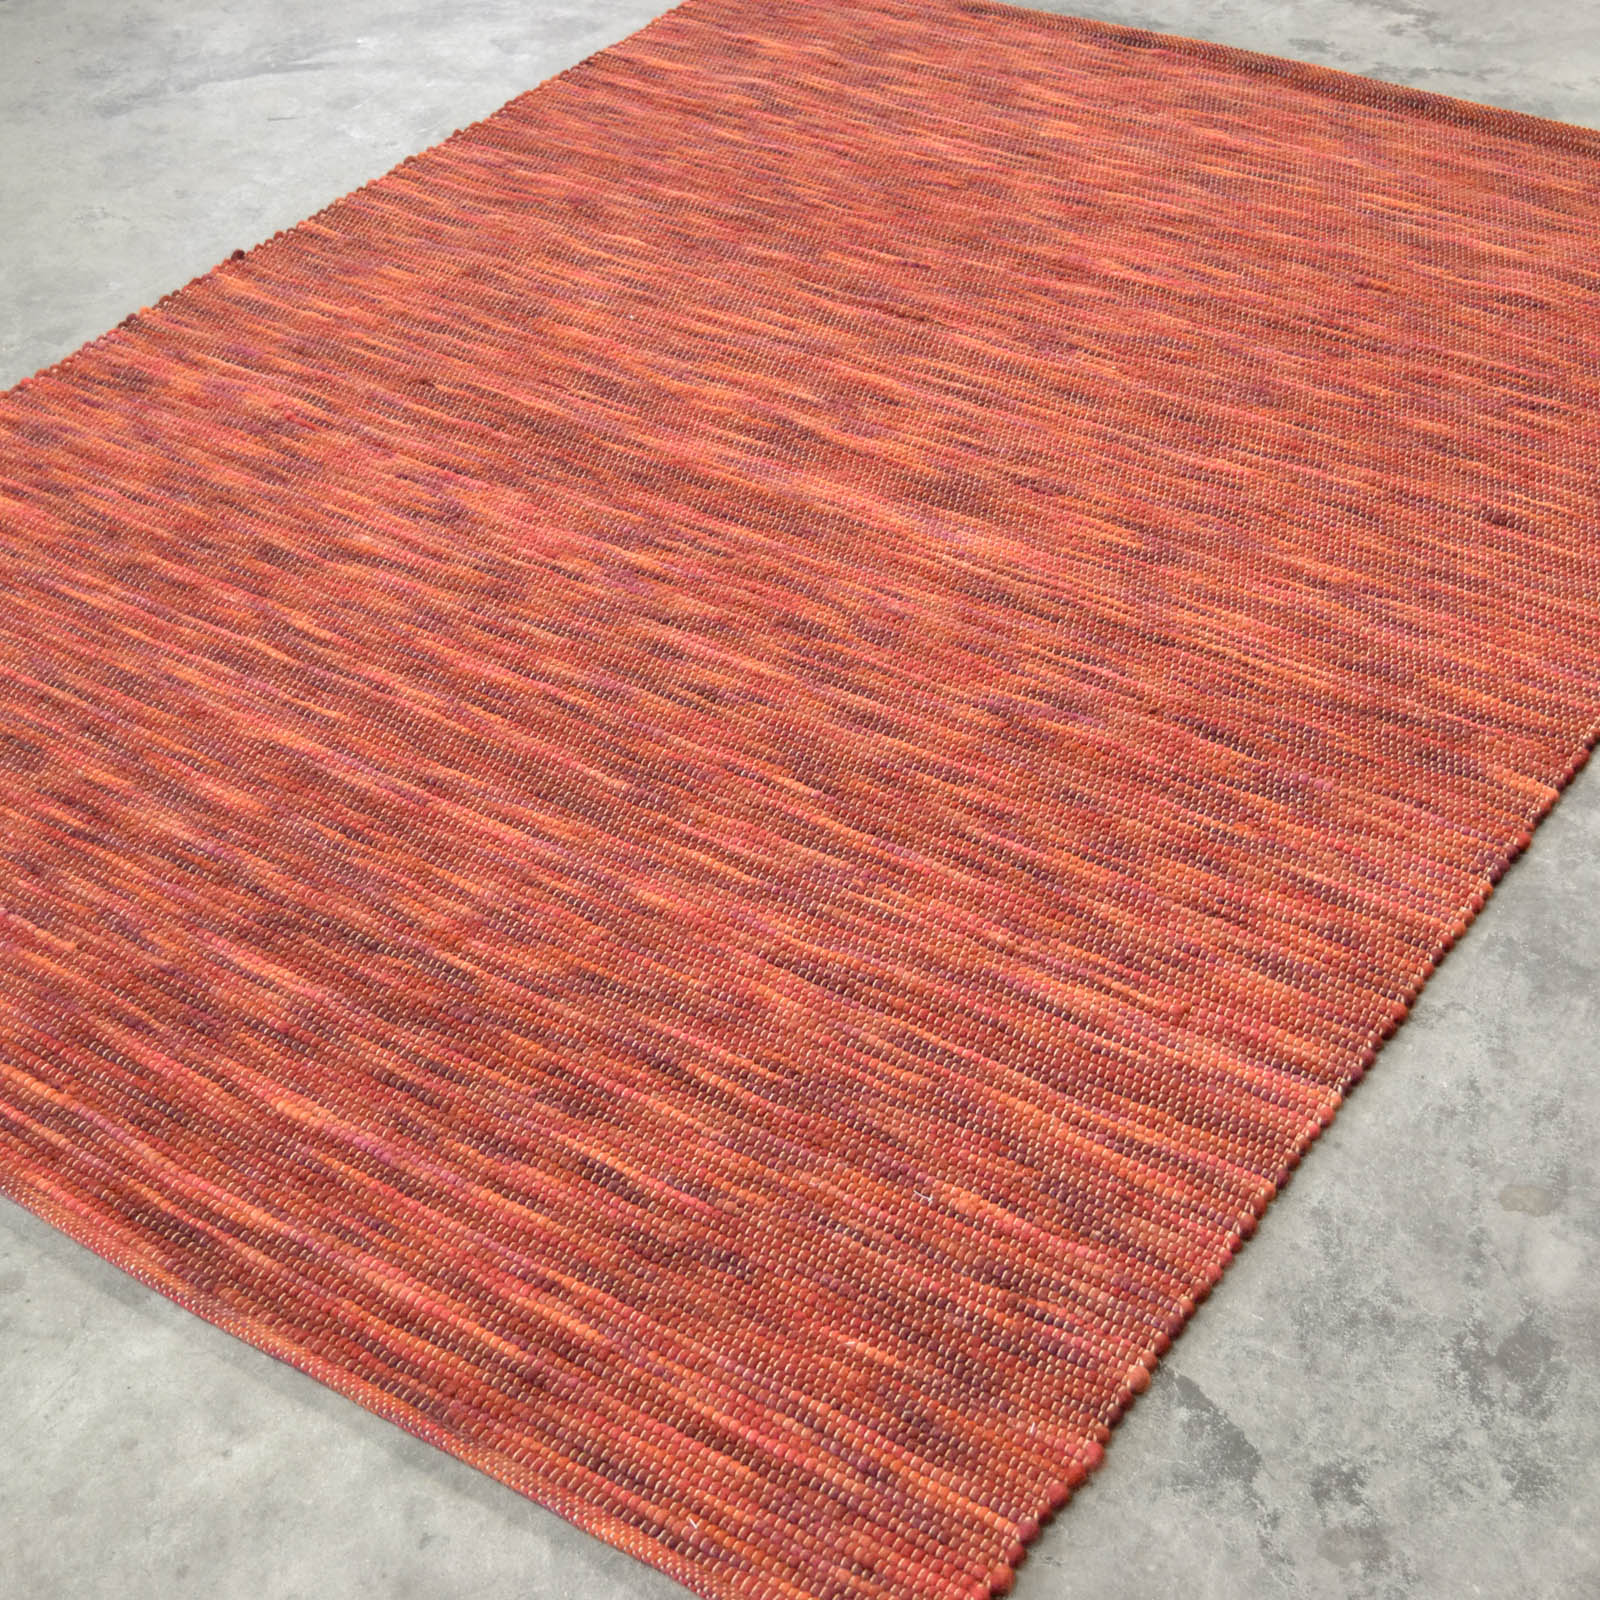 Cobra Rugs 29400 by Brink and Campman